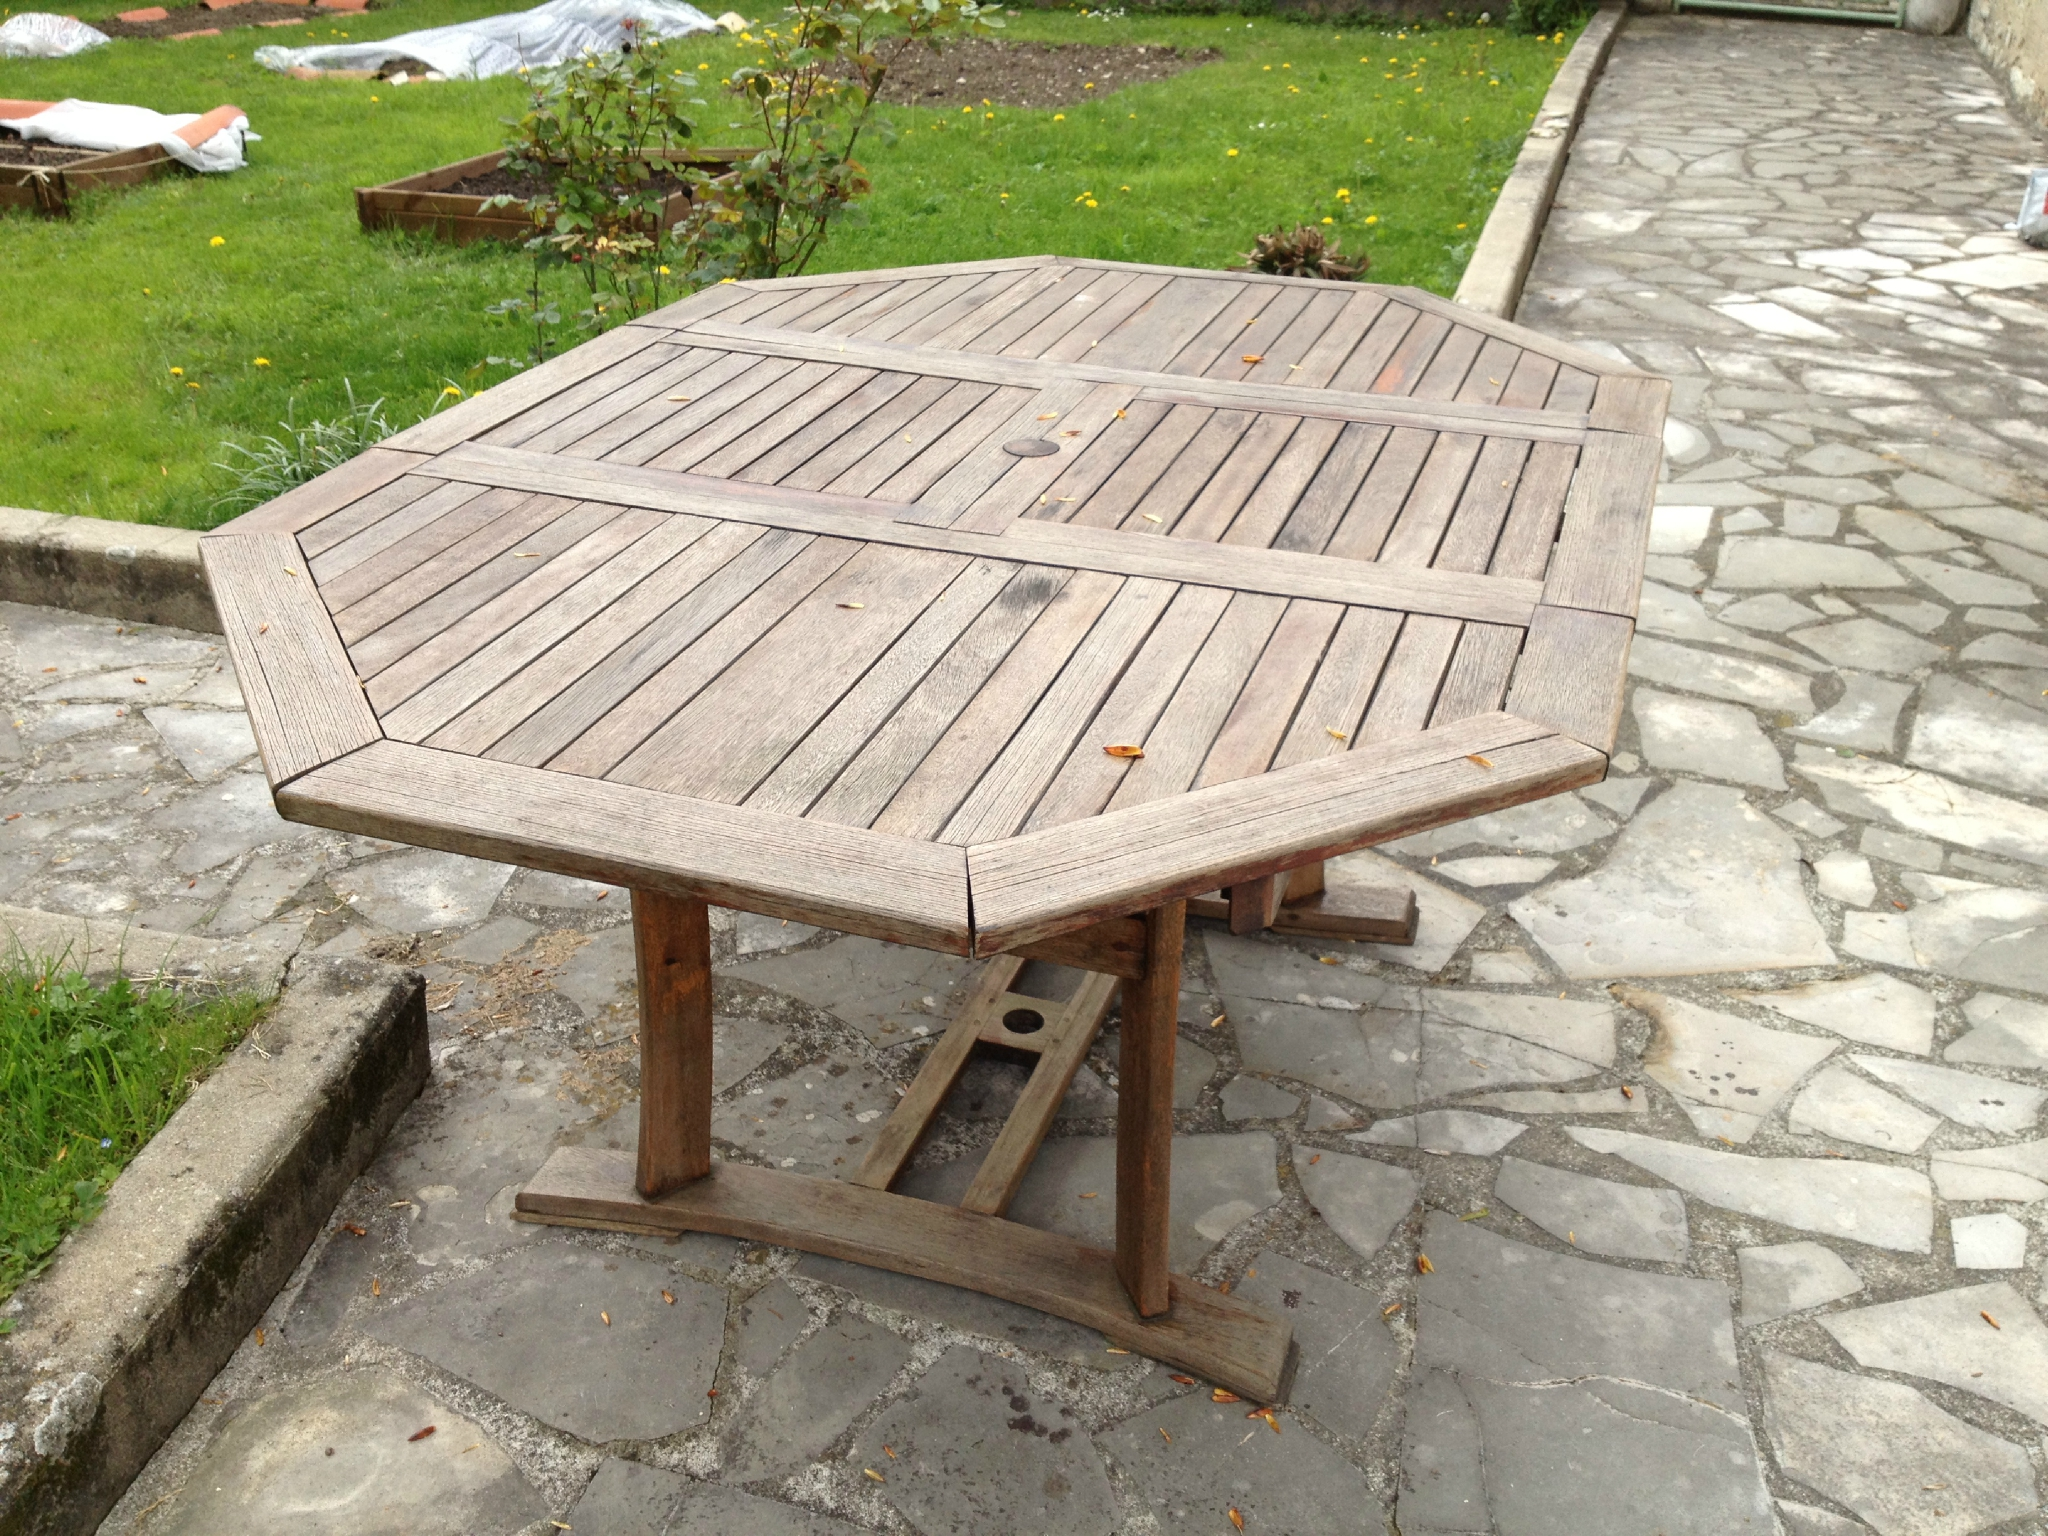 R novation de mobilier de jardin en eucalyptus mes for Renovation jardin